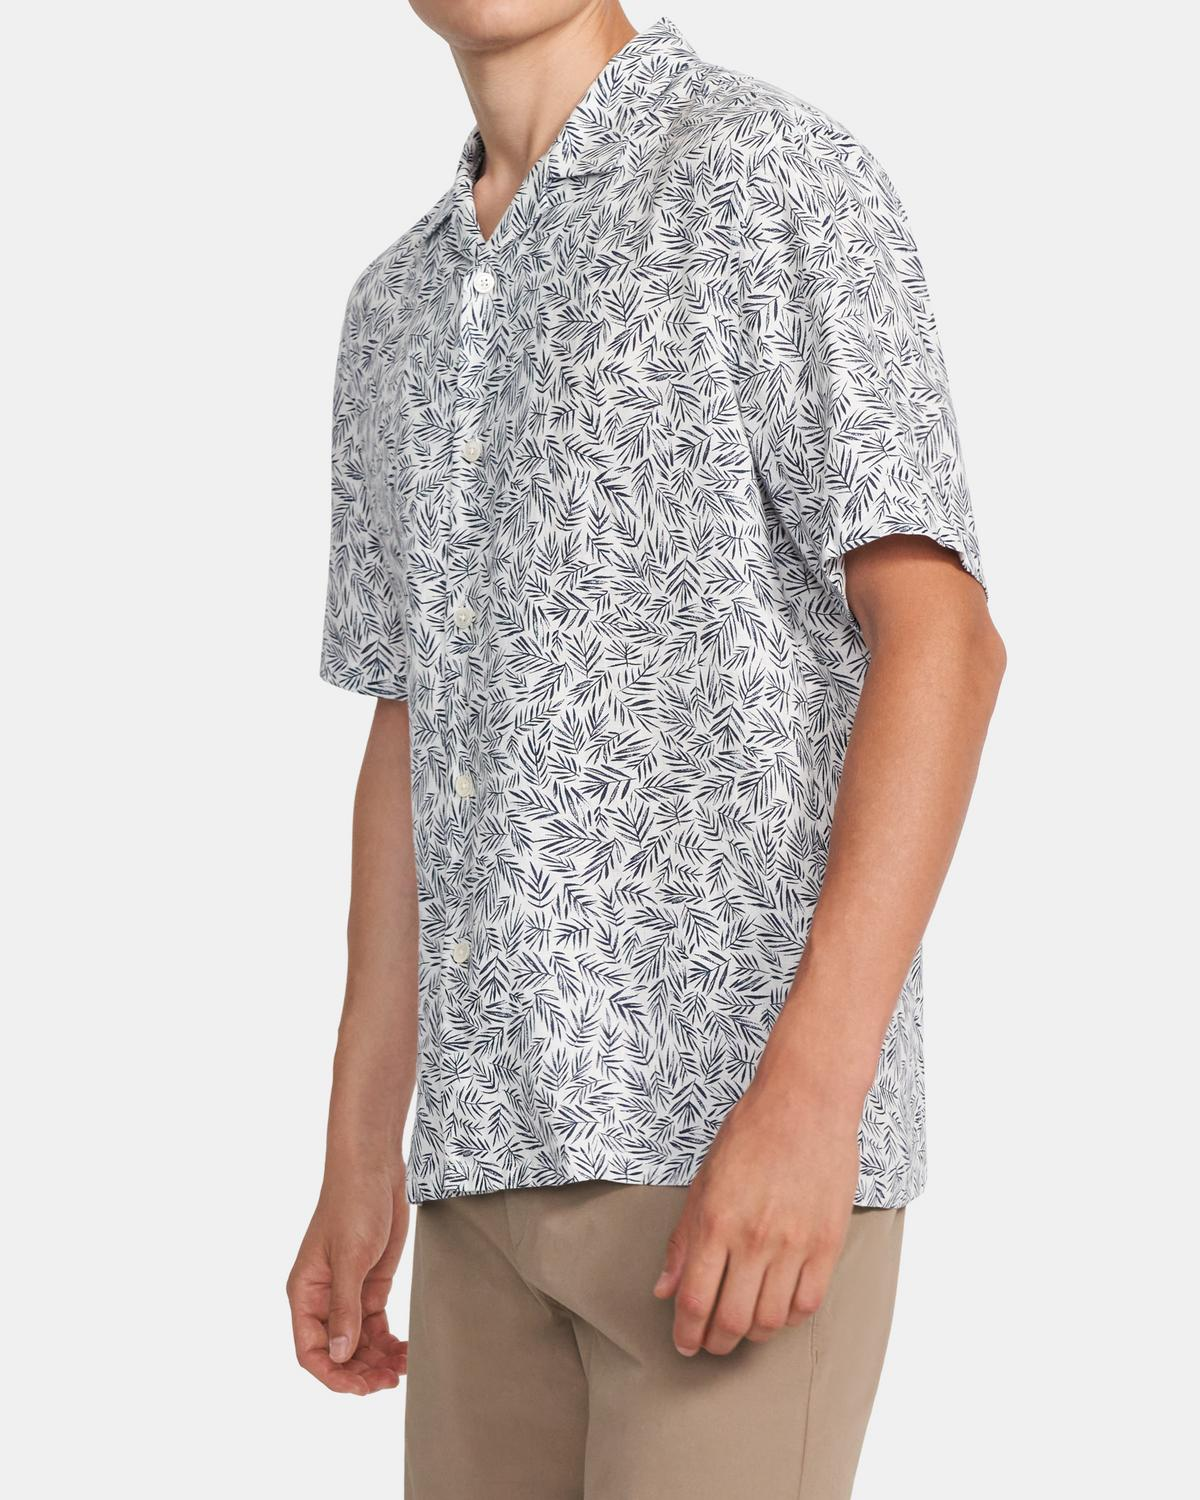 Daze Short-Sleeve Shirt in Palm Print Linen